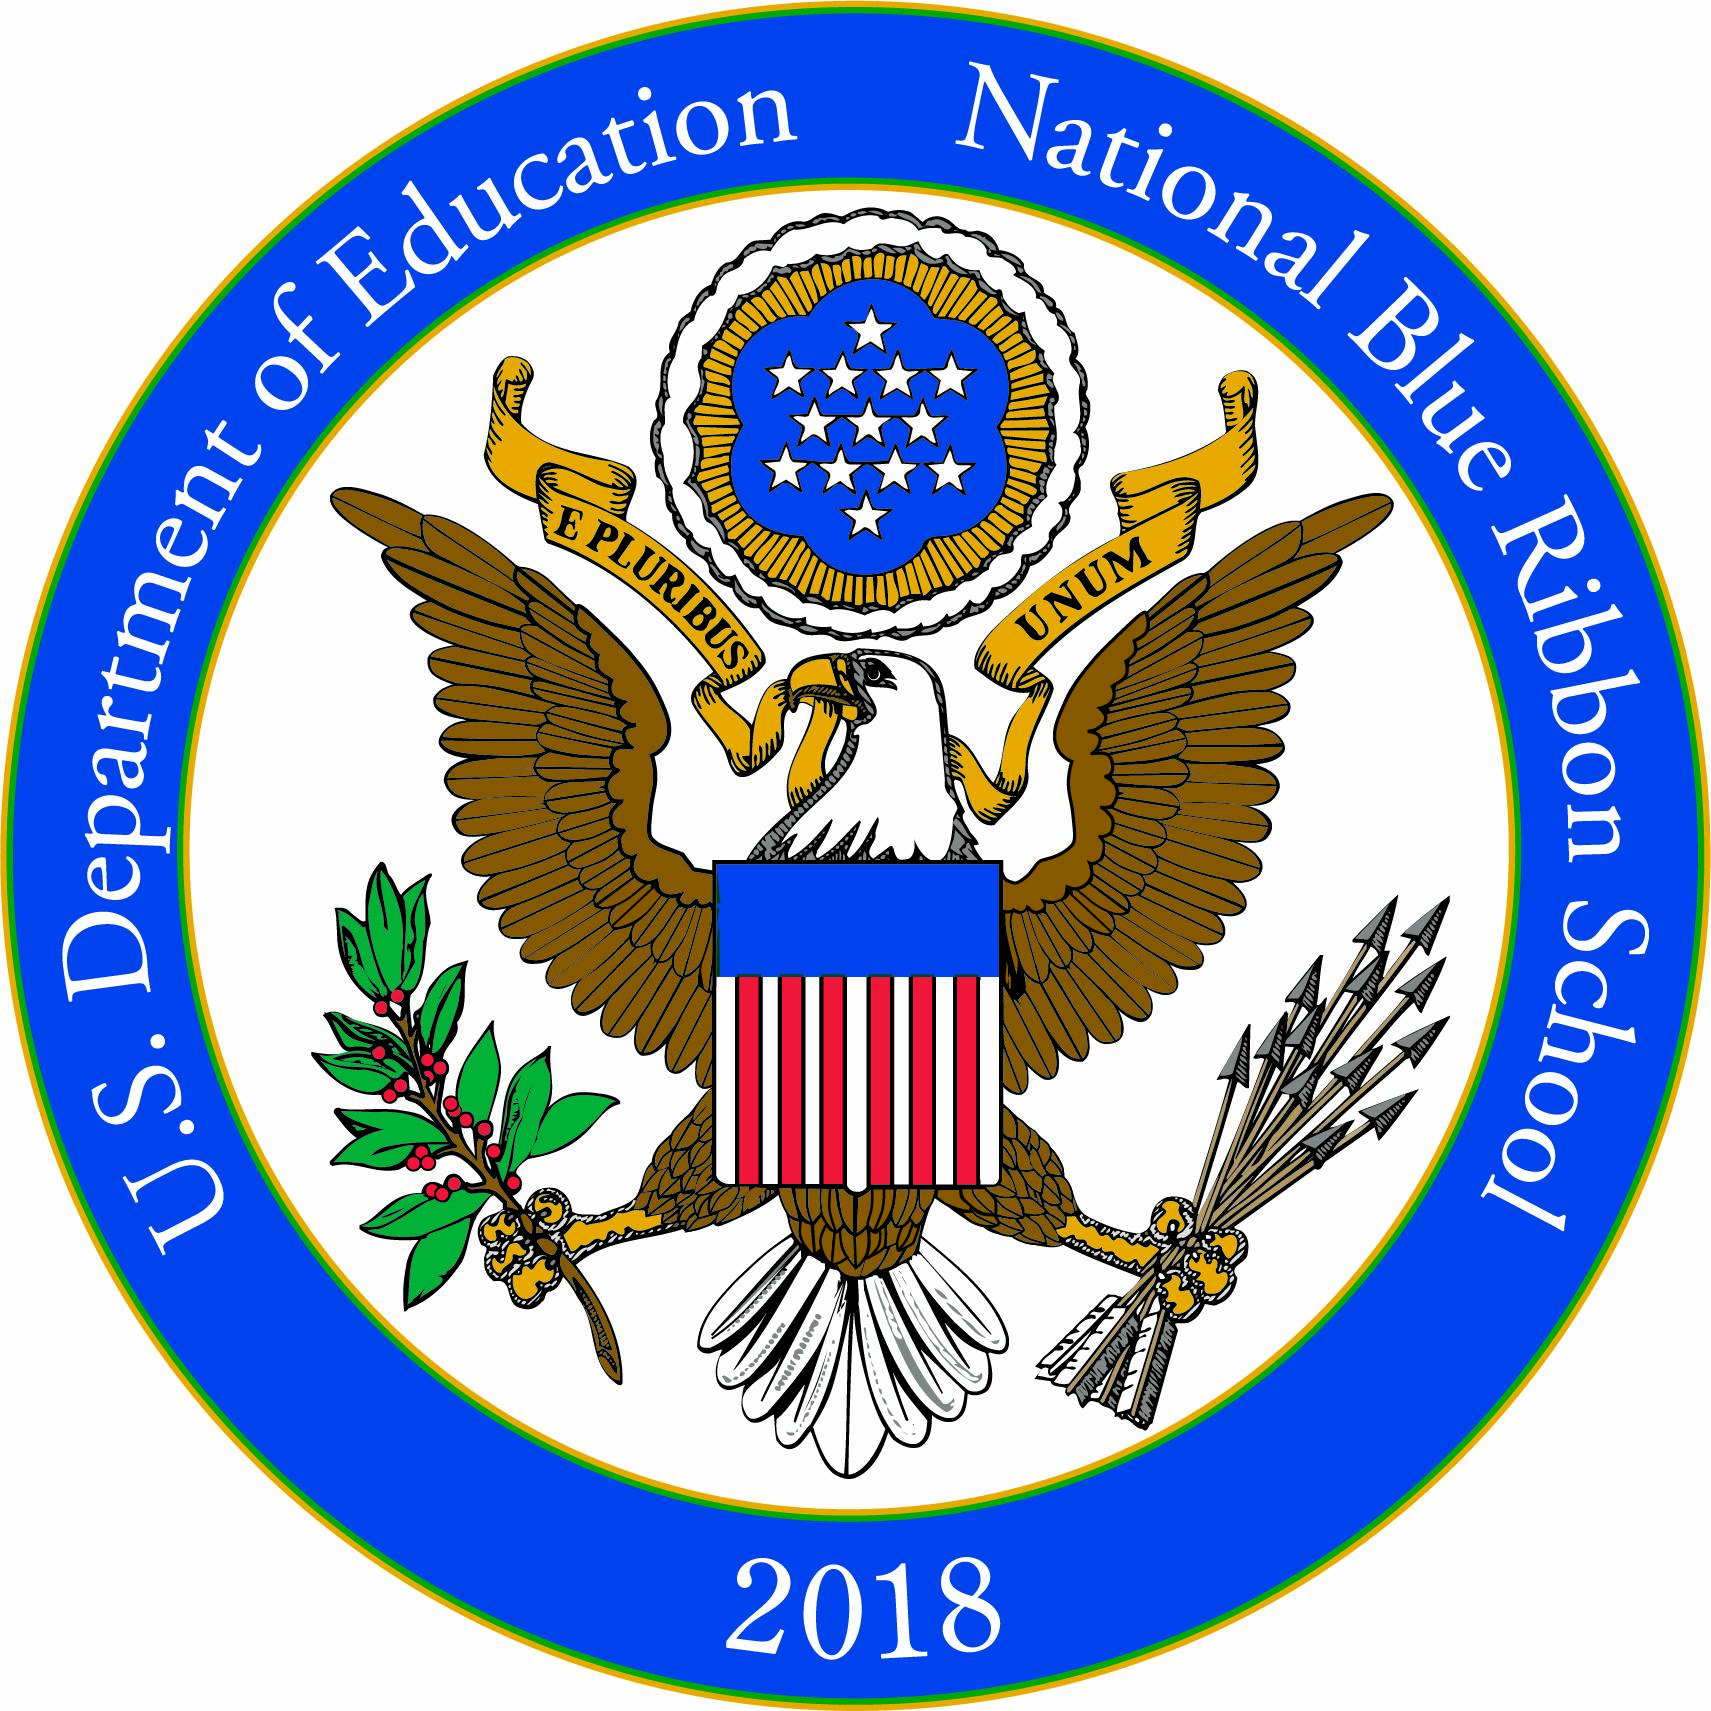 U.S. Department of Education National Blue Ribbon School